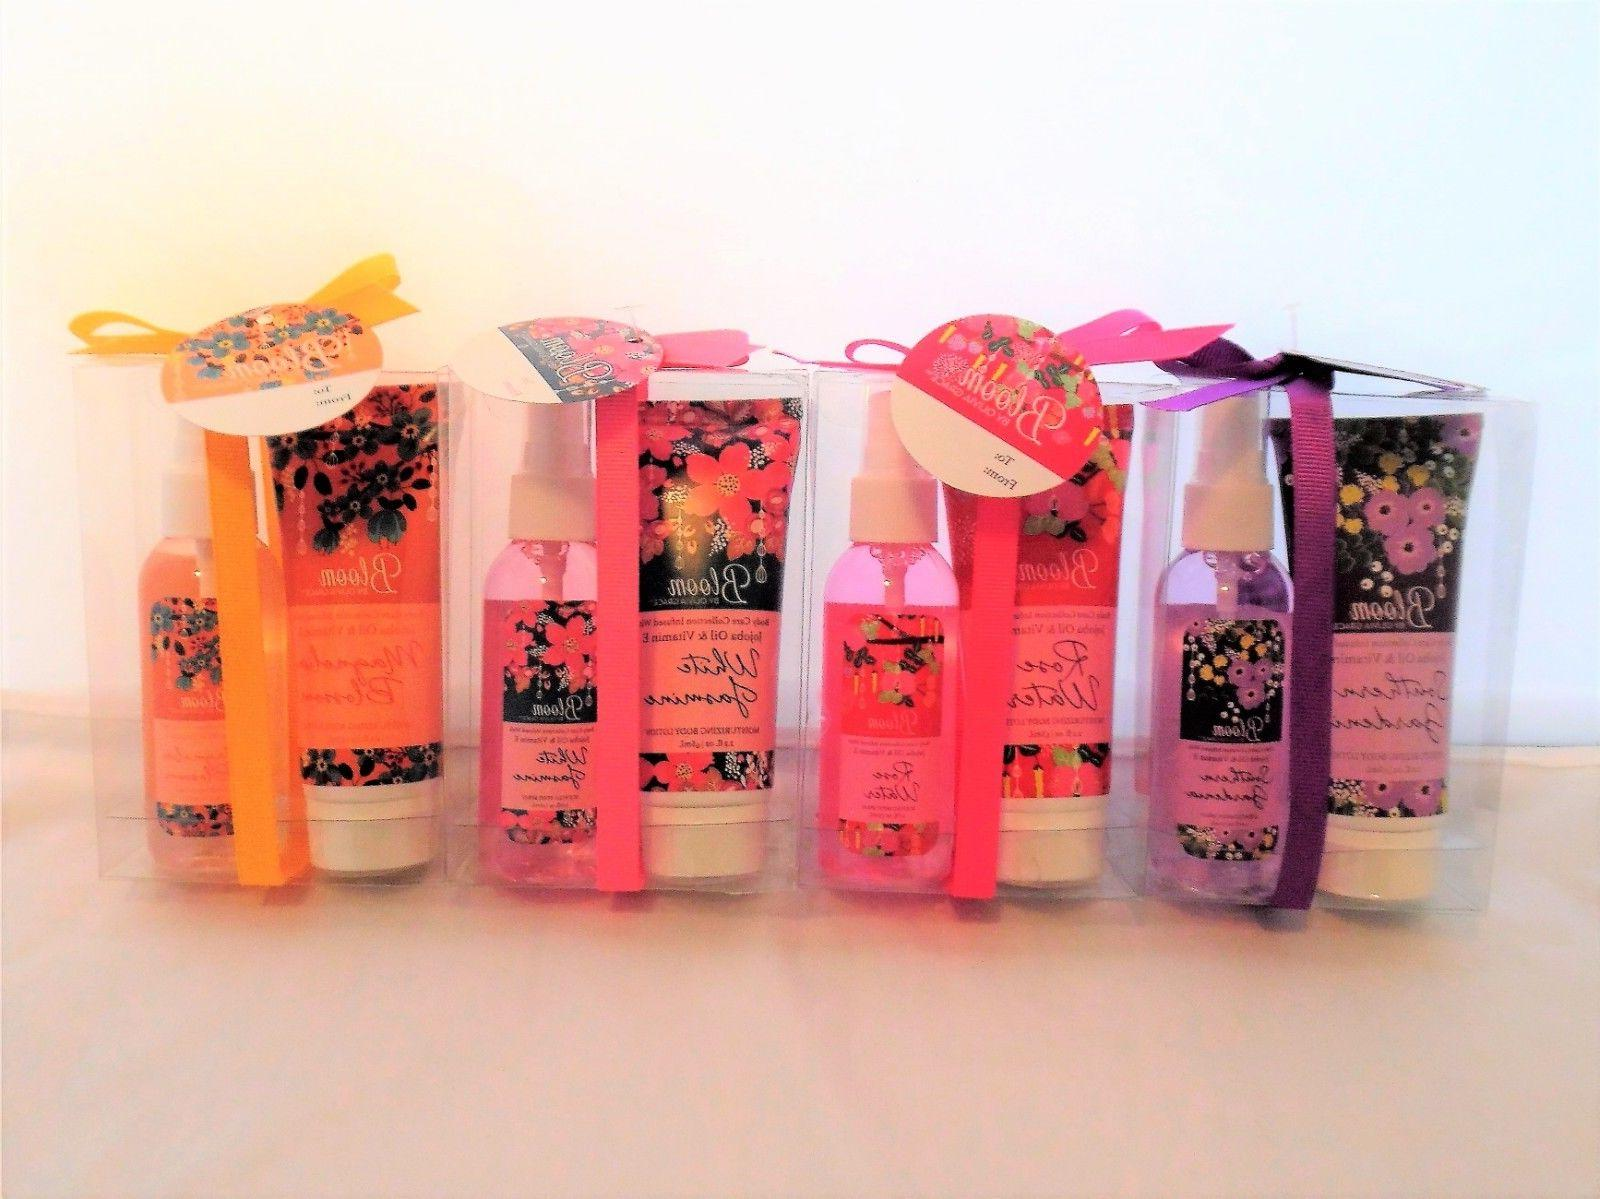 bloom by olivia grace body lotion